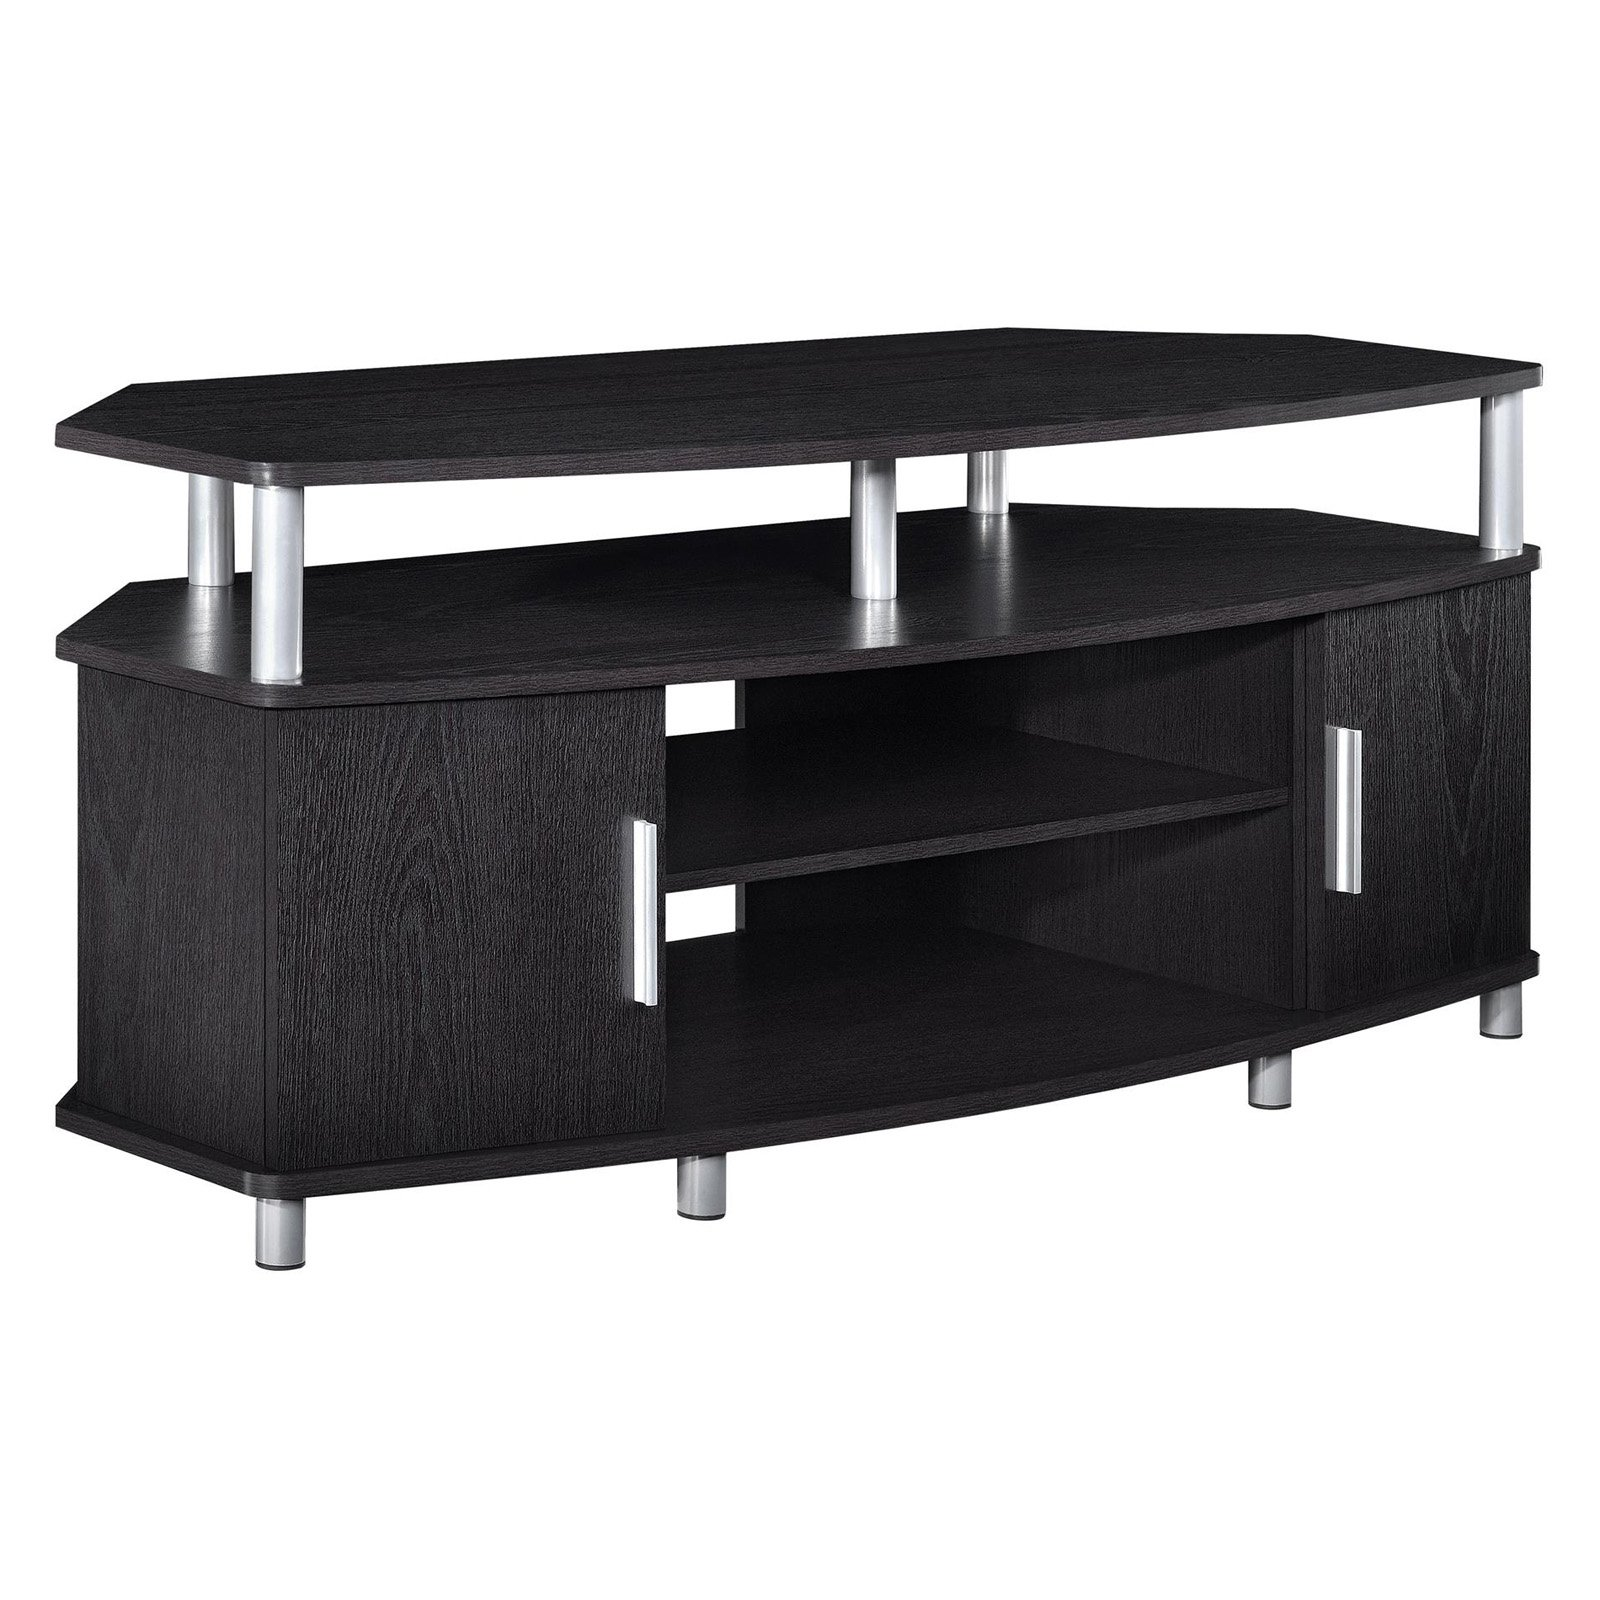 "Ameriwood Home Carson Corner TV Stand for TVs up to 50"" Wide, Black Cherry by Ameriwood"